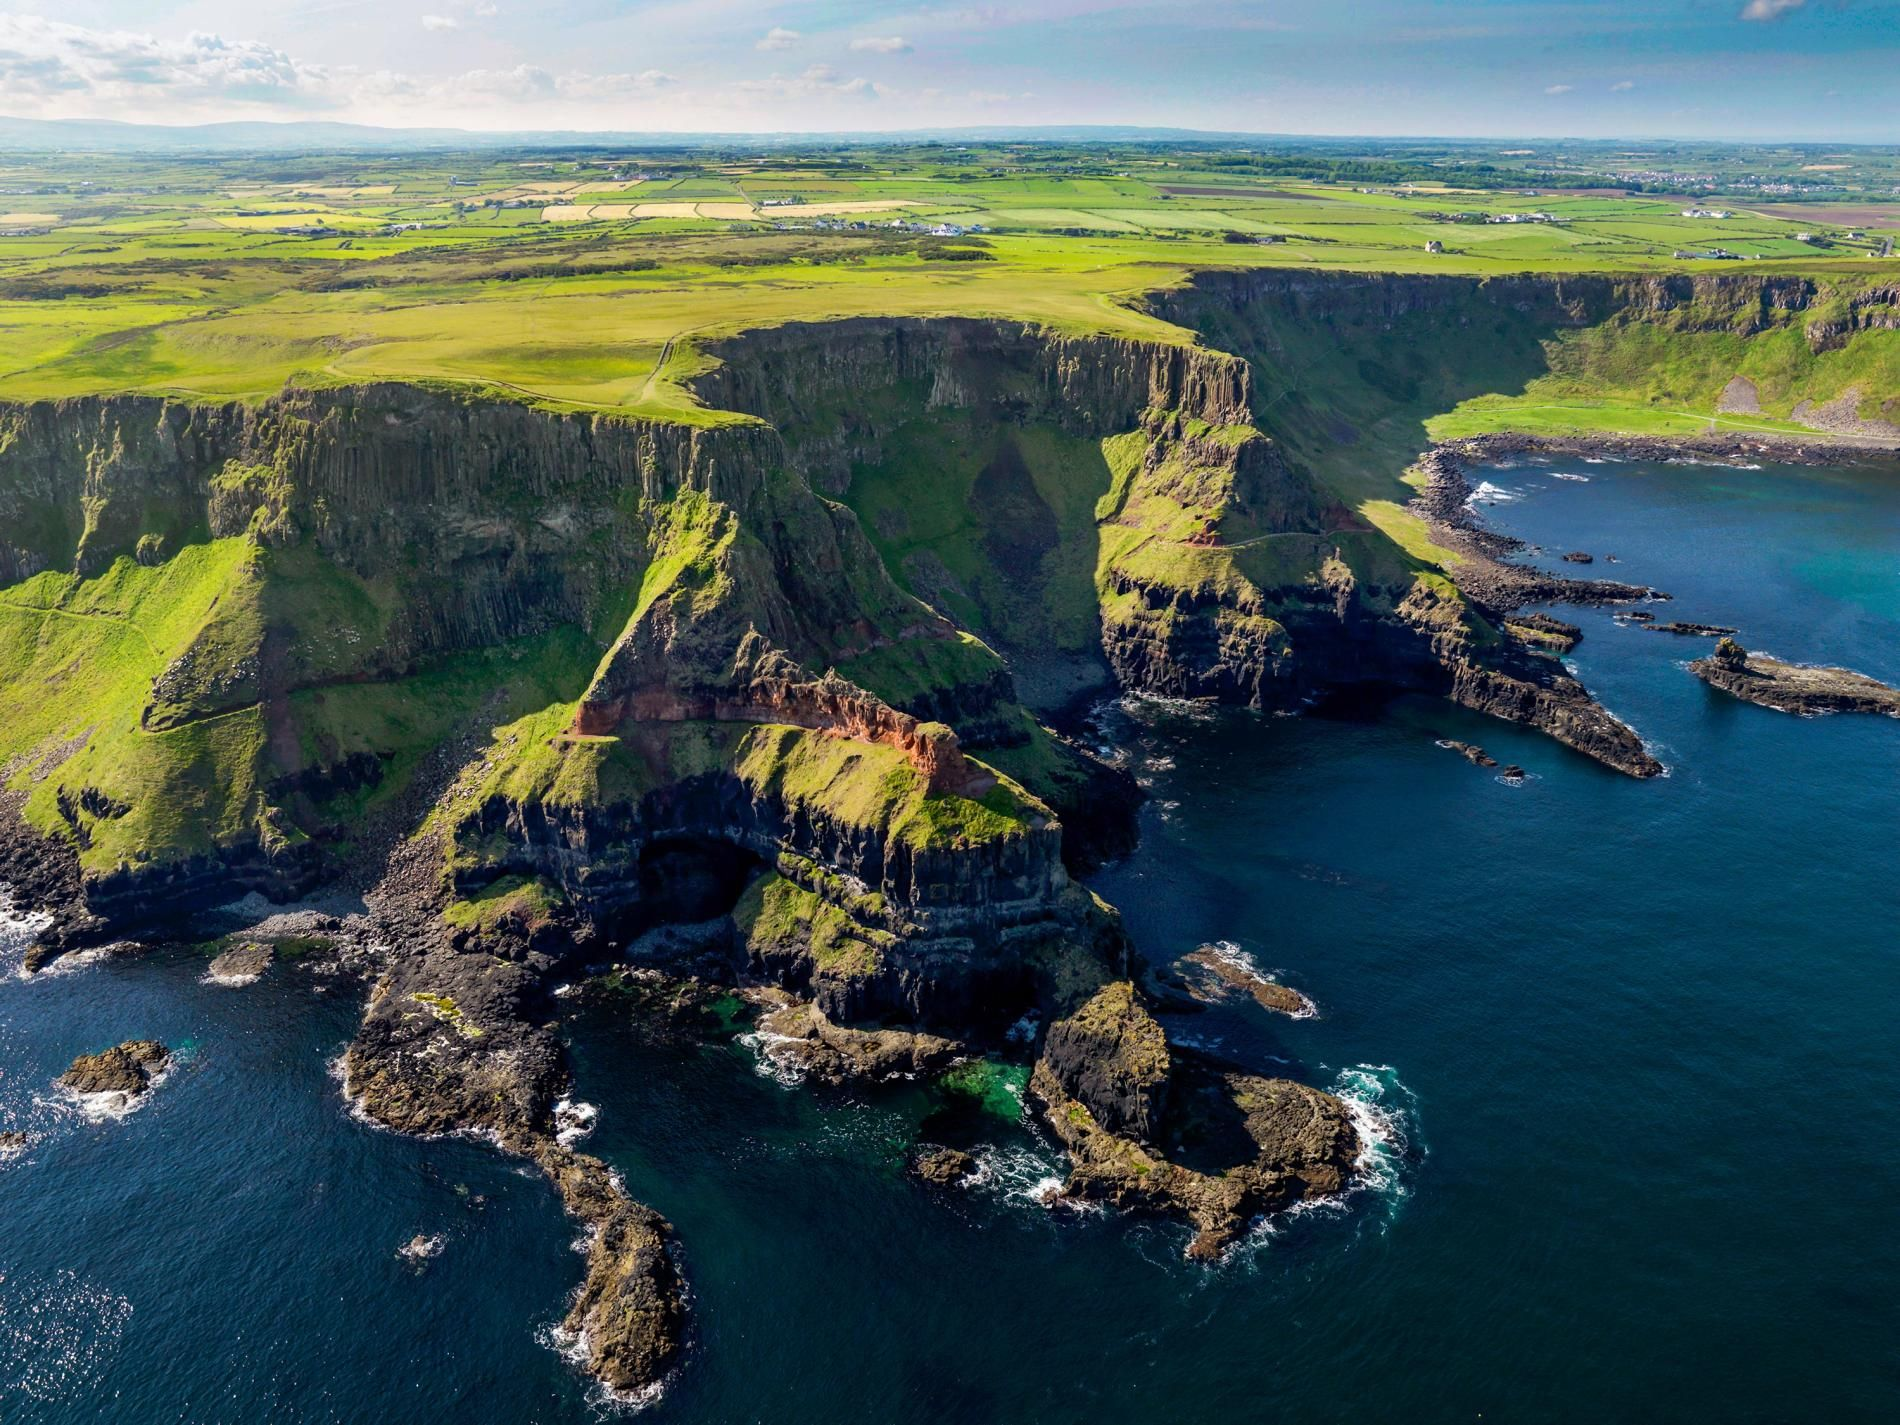 Coastal Scenery in Northern Ireland